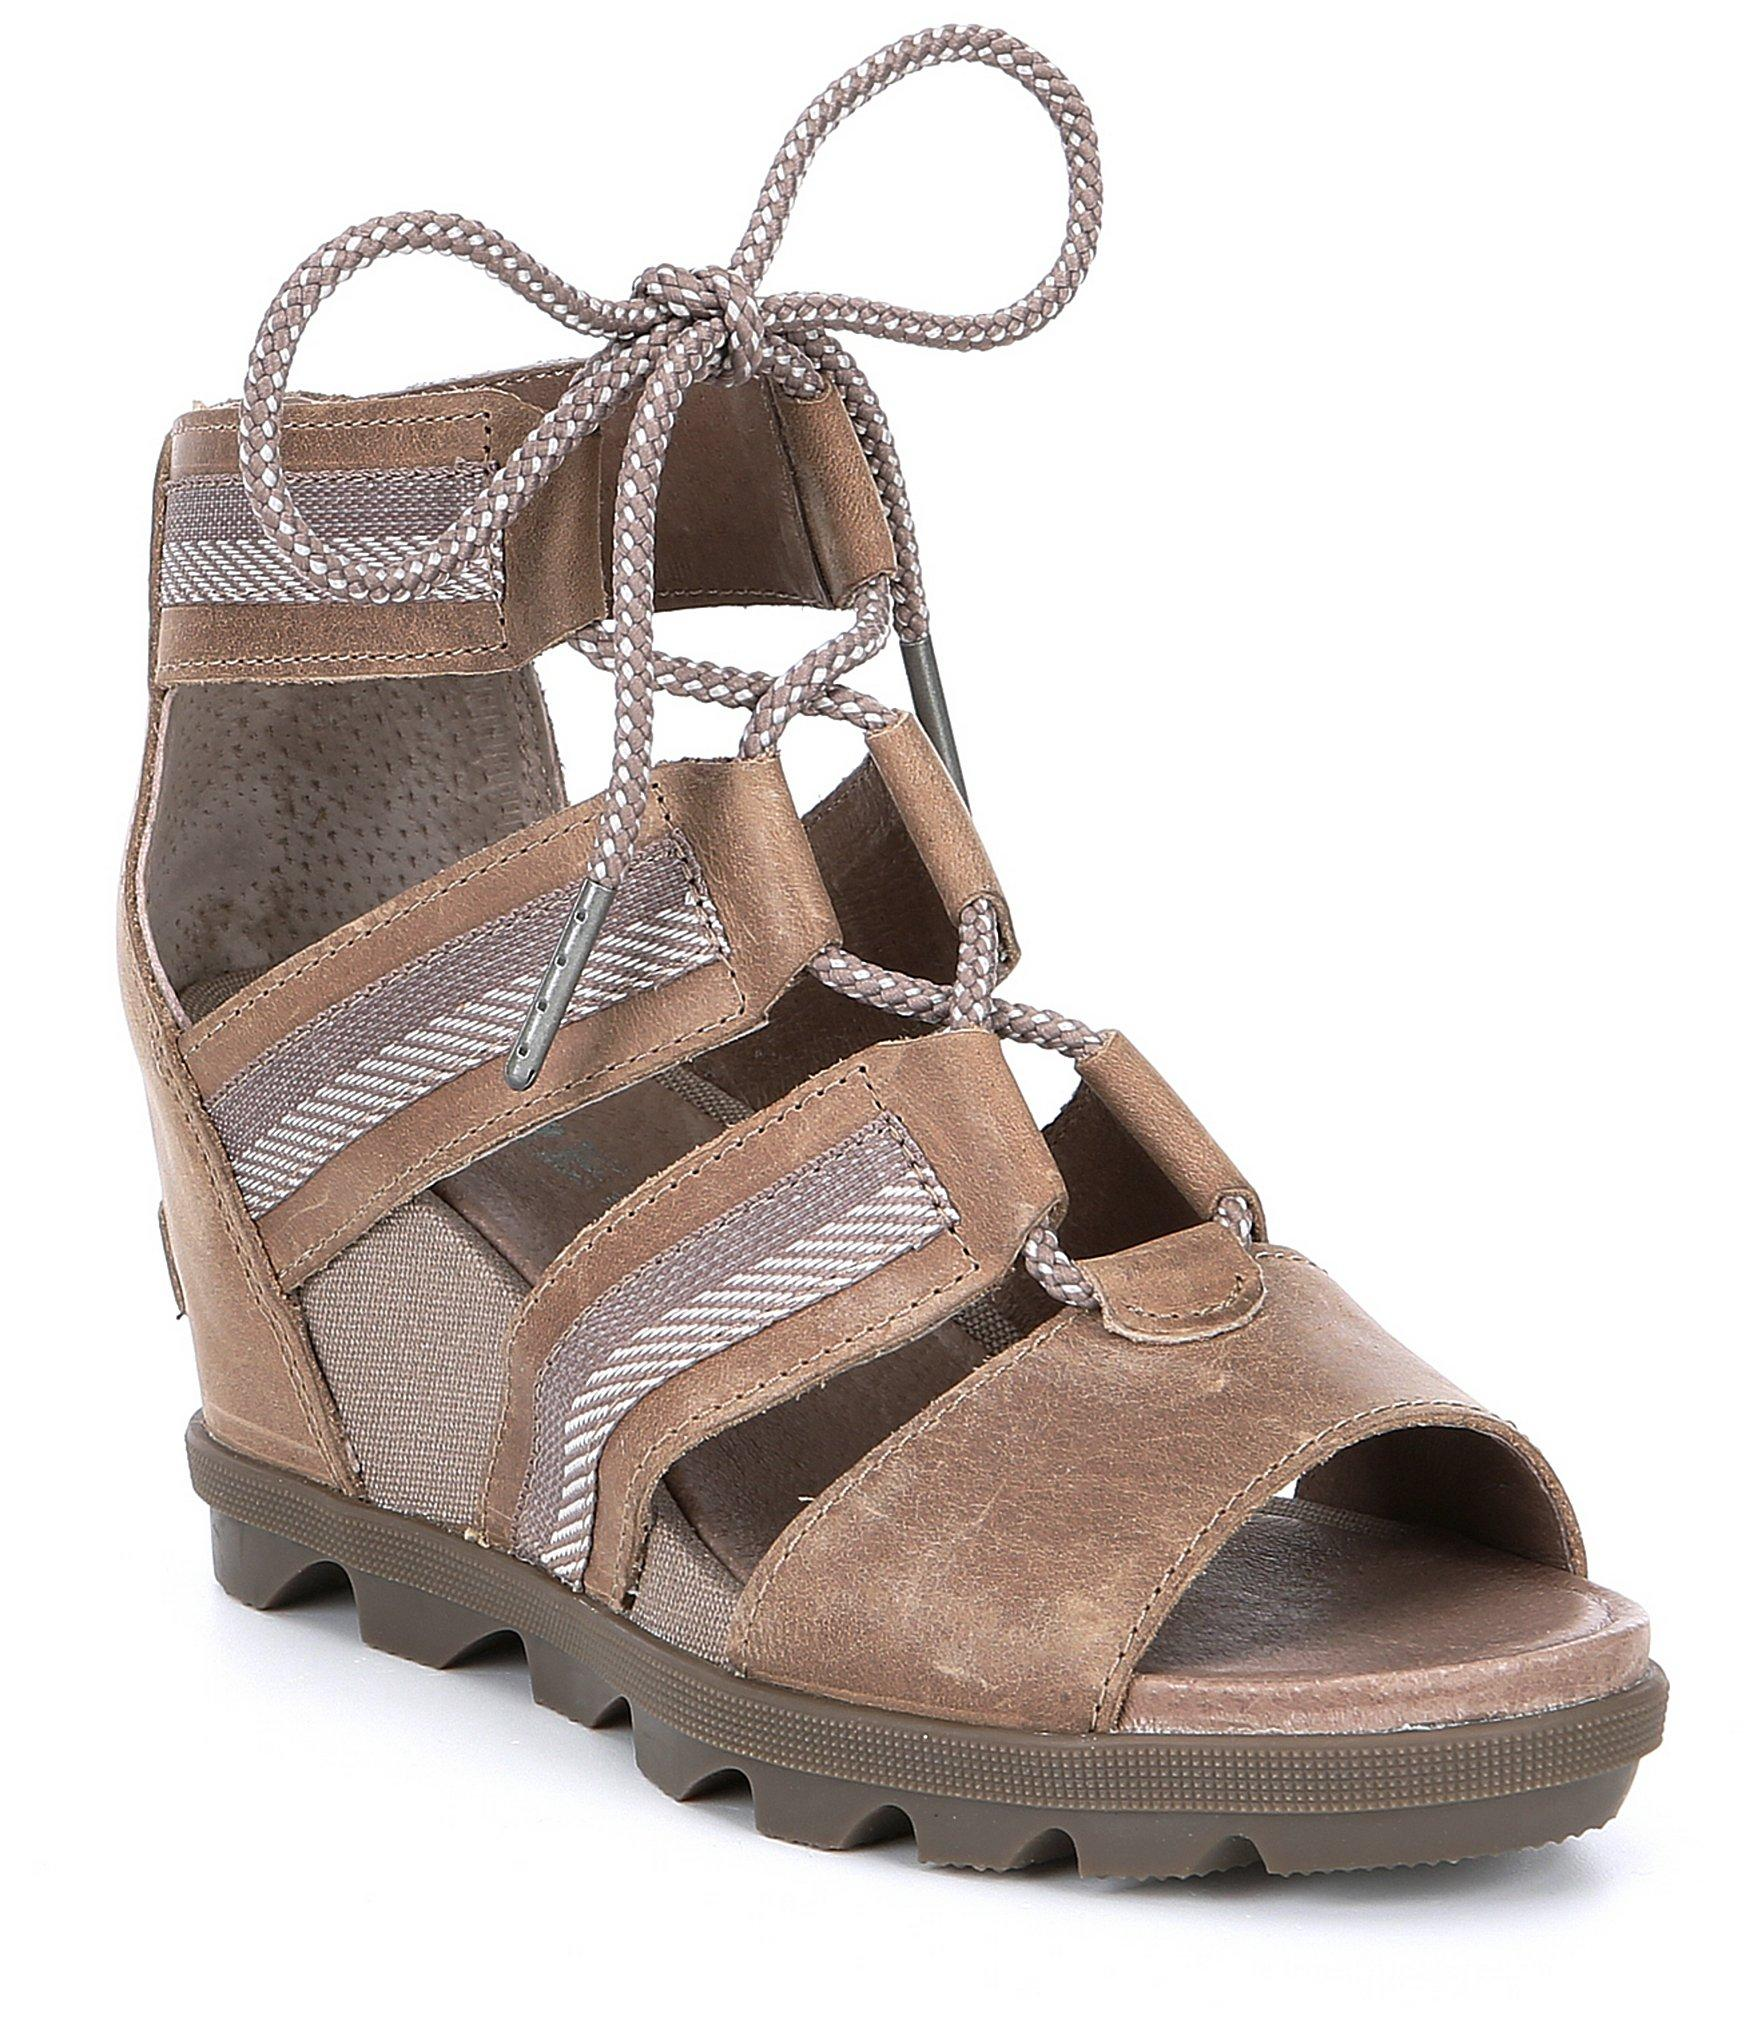 f9963aed4 Lyst - Sorel Joanie Ii Leather Lace Sandals in Brown